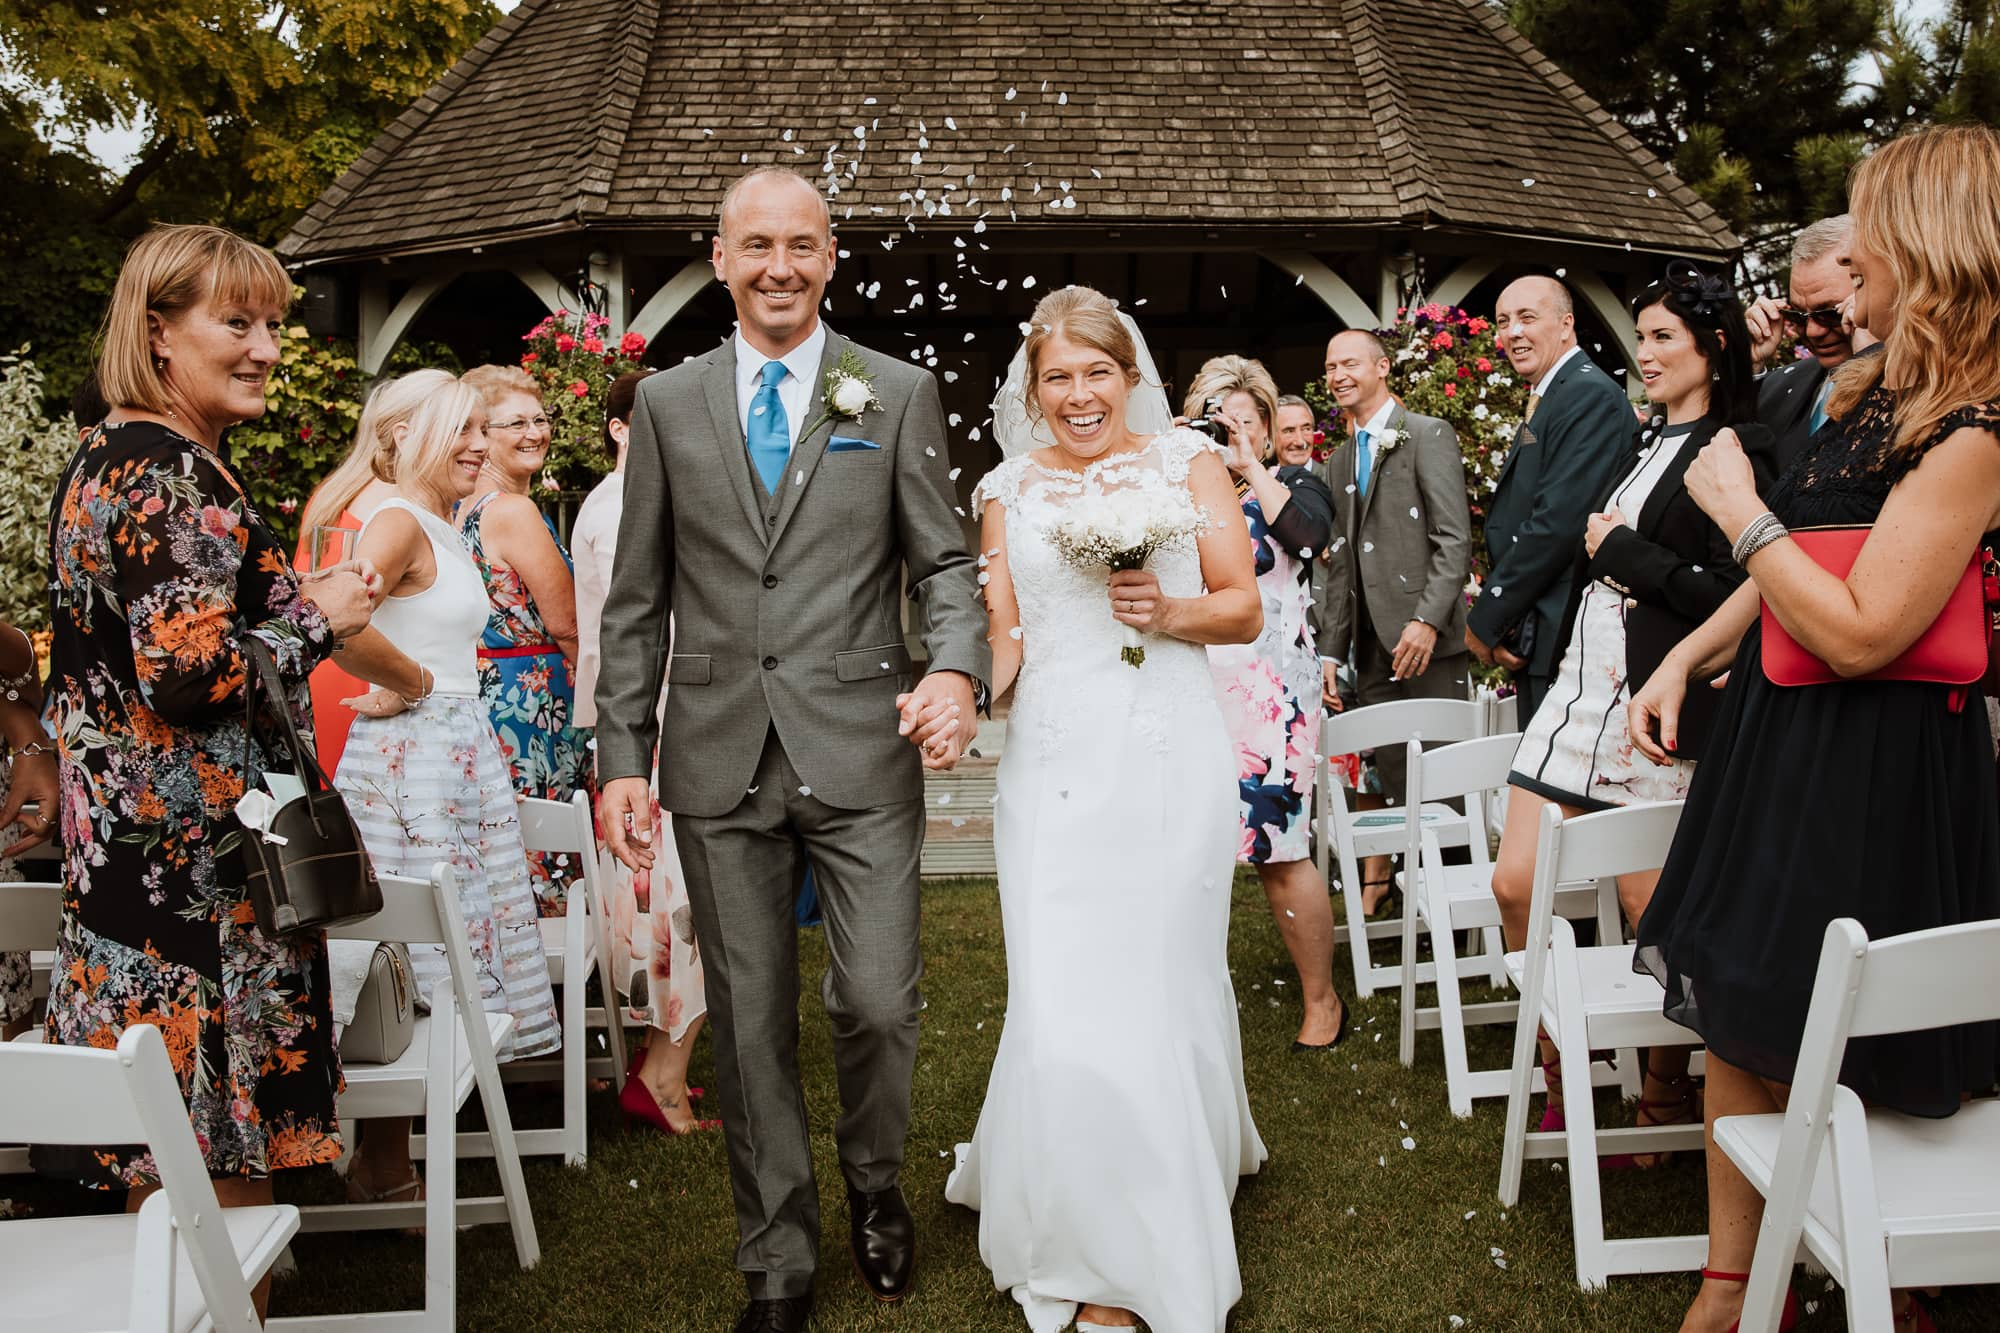 Bride and Groom being showered with confetti after their Kent Wedding ceremony